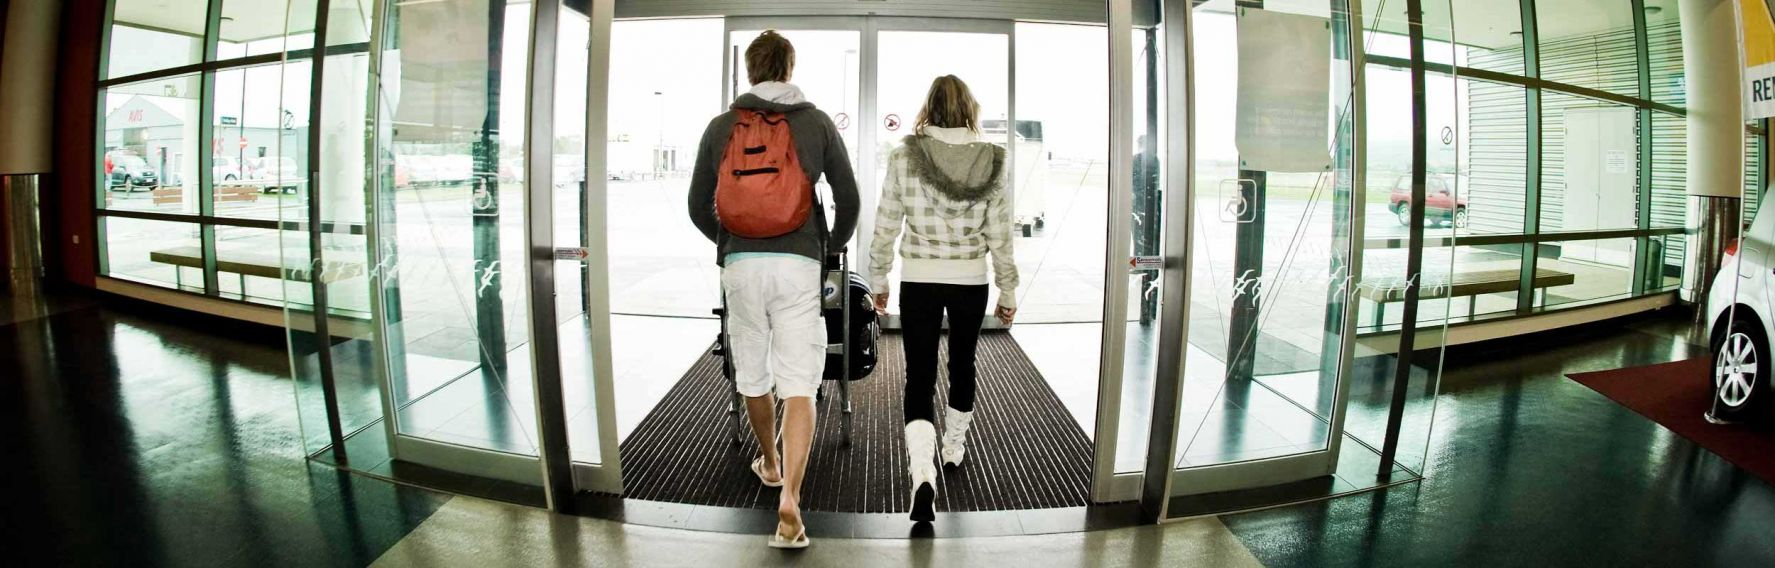 Students arriving at Dunedin International Airport